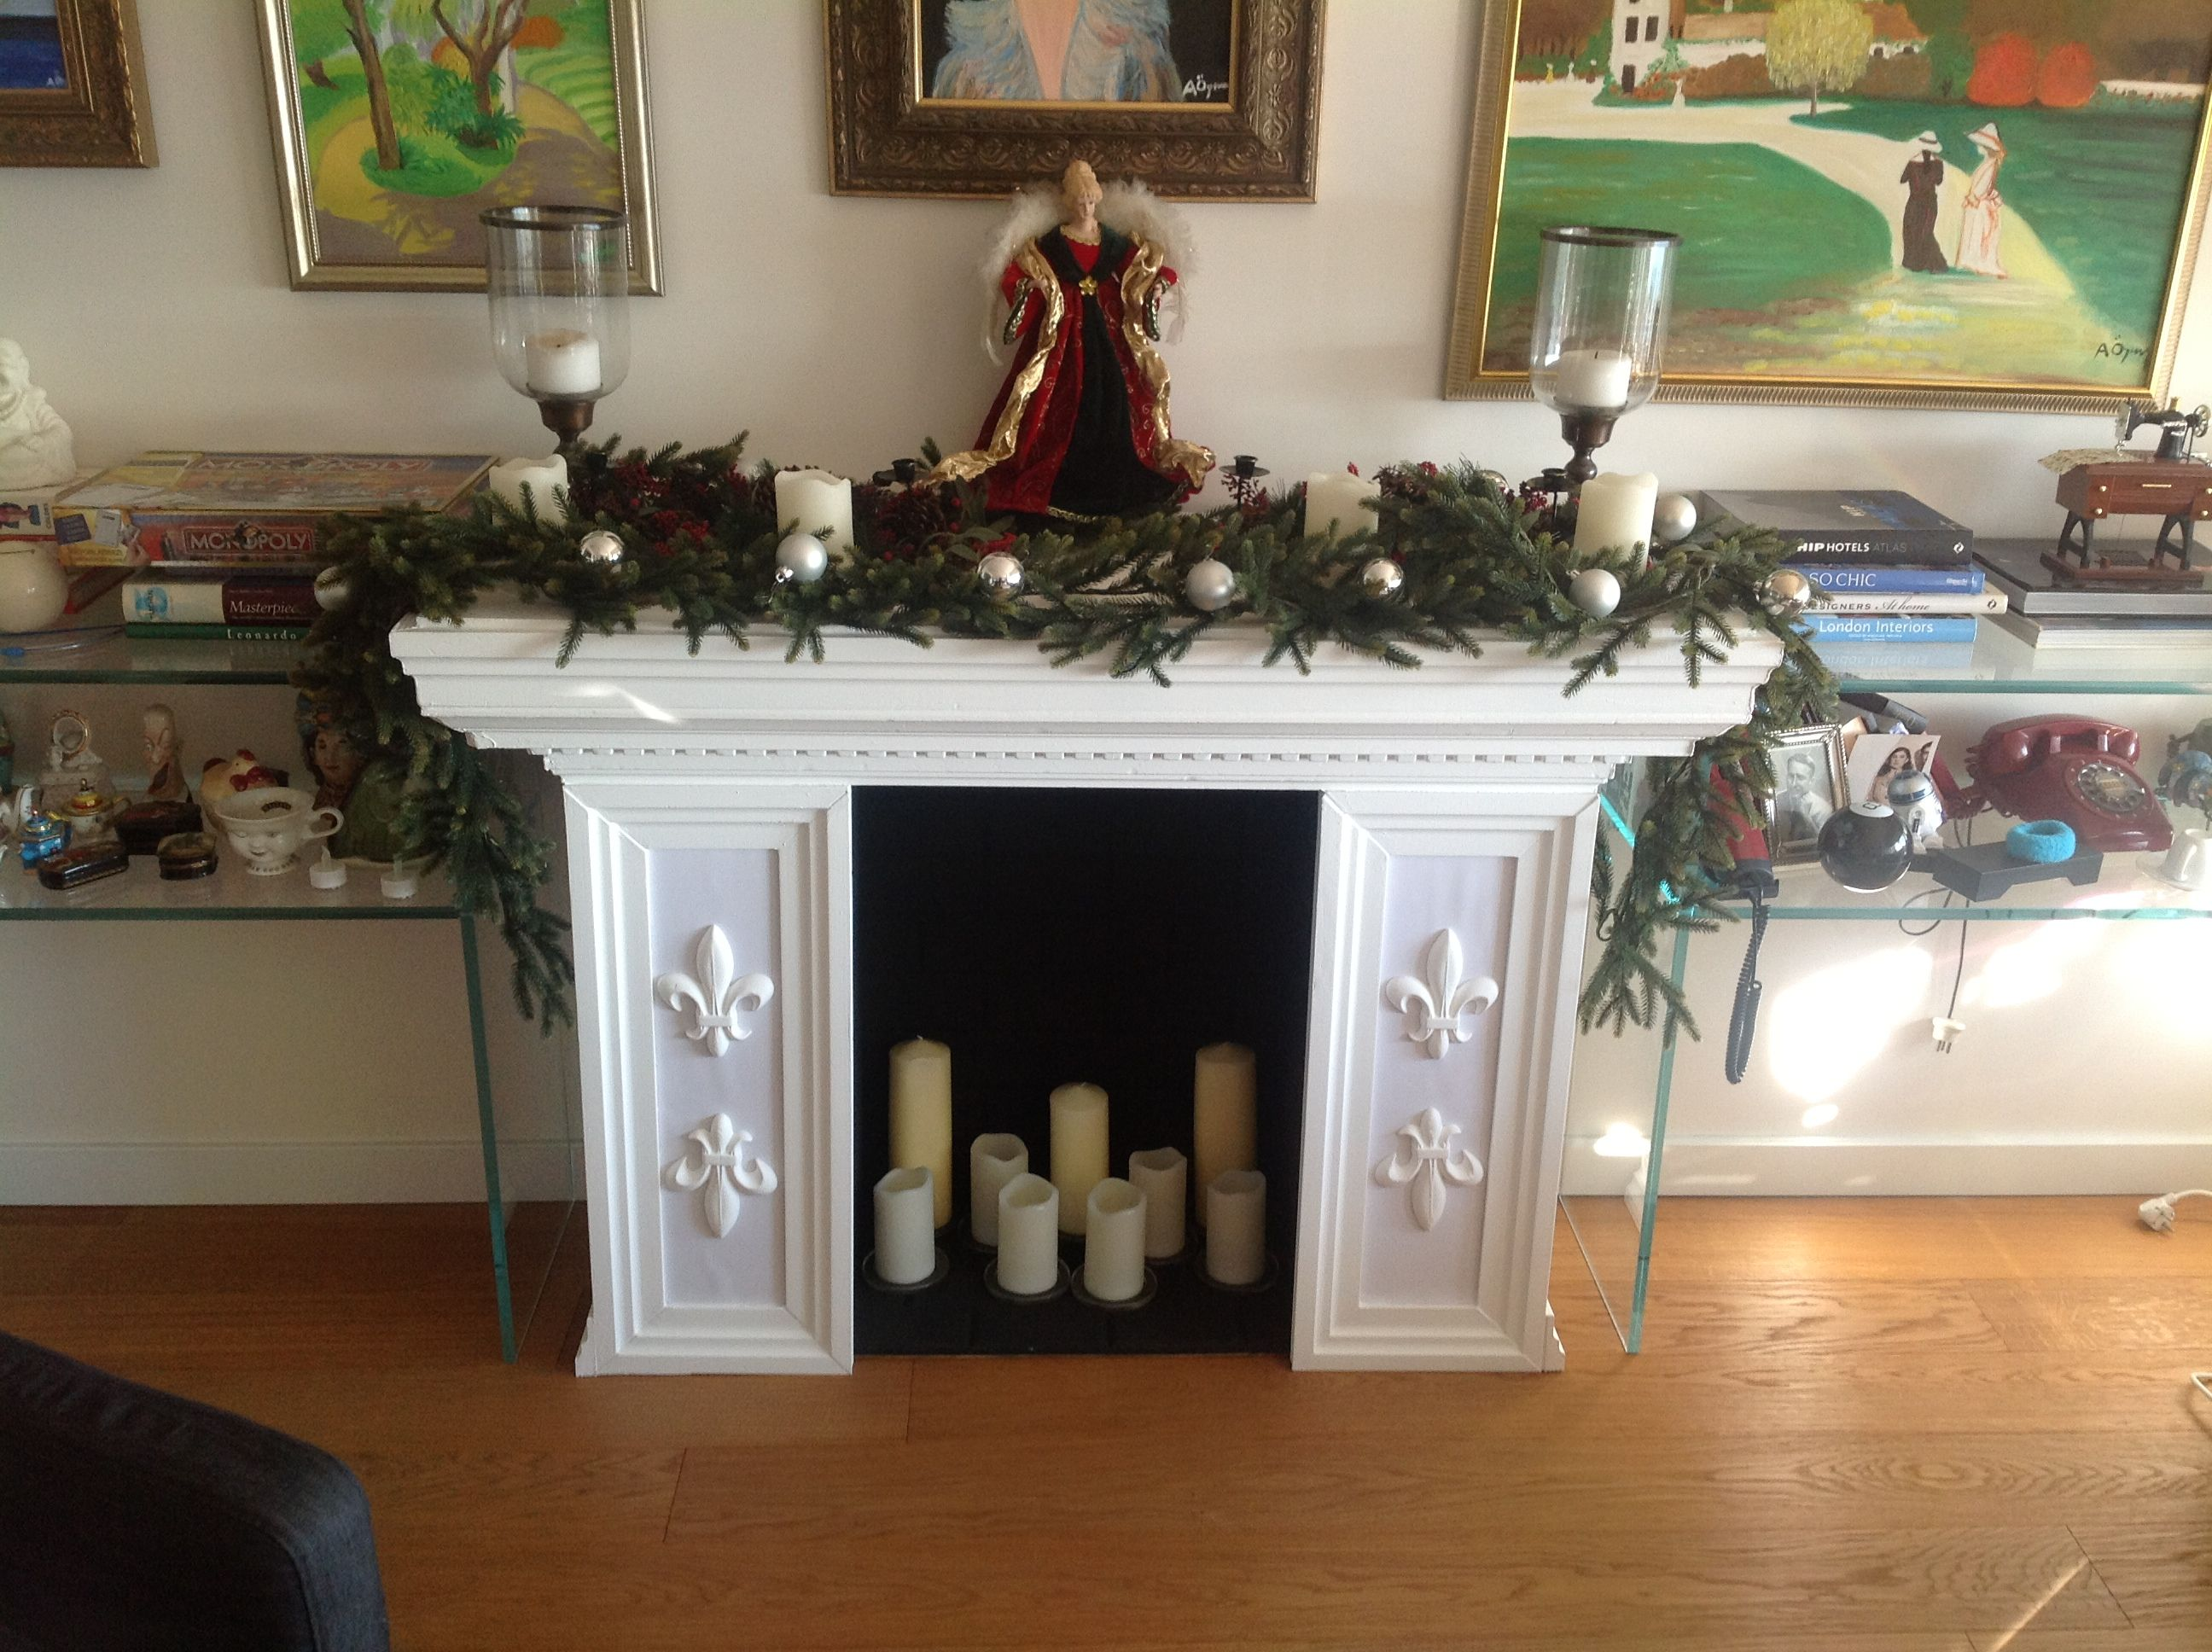 Faux fireplace made out of cardboard and styrofoam. Can